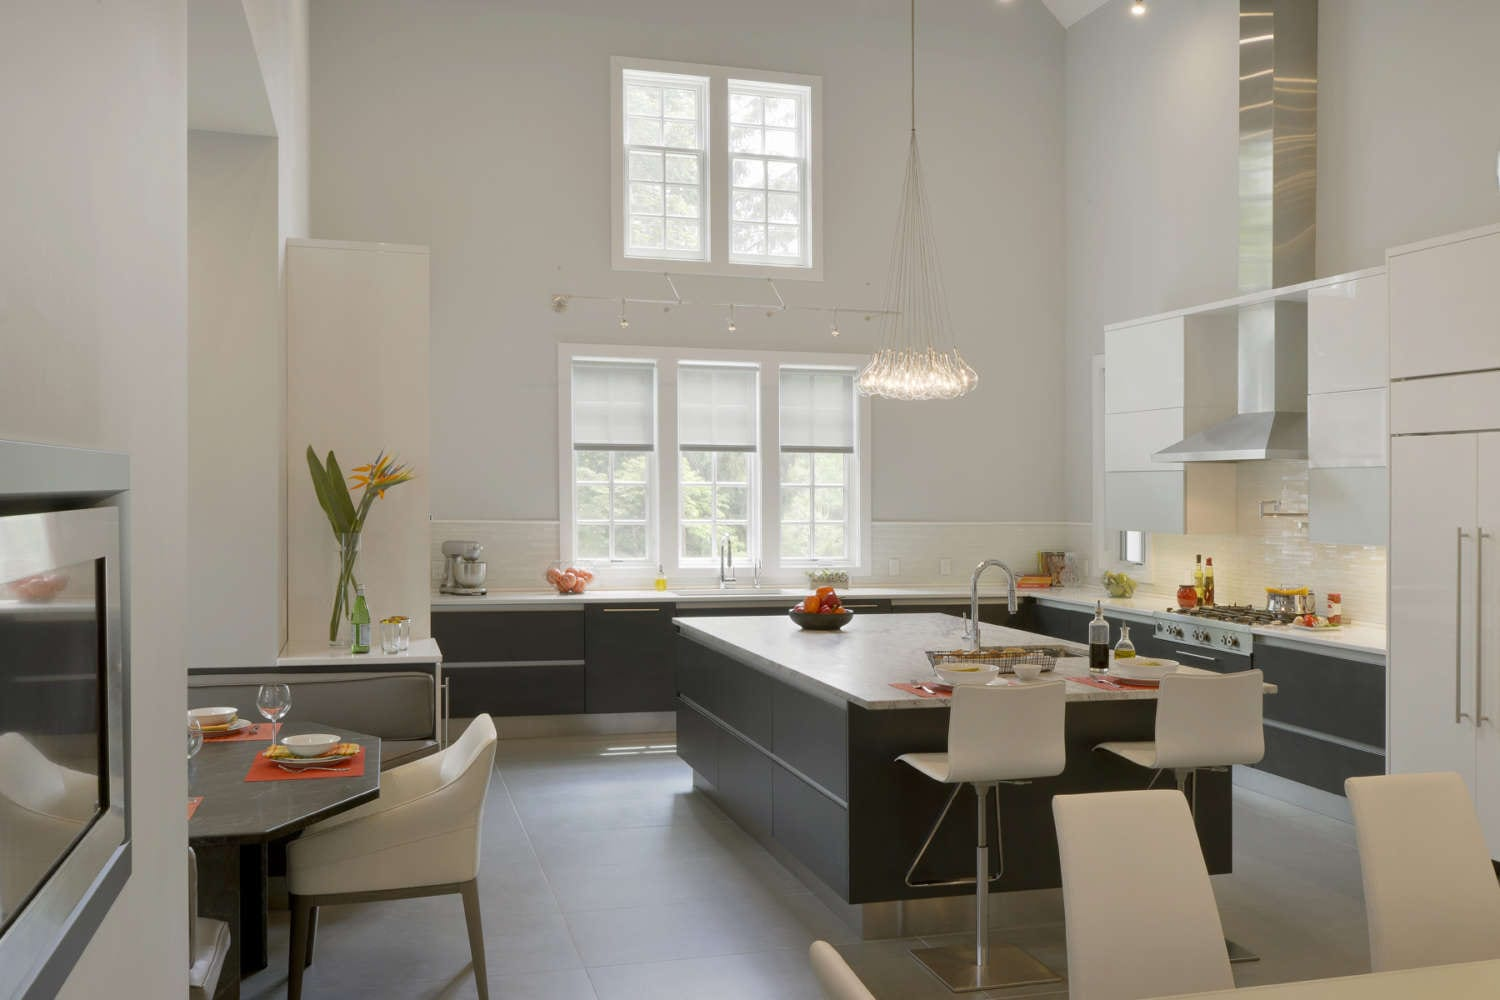 Large, open contemporary kitchen with high ceilings, sculptural blown glass lighting and flat panel, frameless Artcraft Cabinetry in both high-gloss white finish and dark quarter sawn oak veneer. Fully custom cabinets feature alumasteel accents, including an alumasteel toe kick. Design by Aston Smith of Bilotta Kitchens.